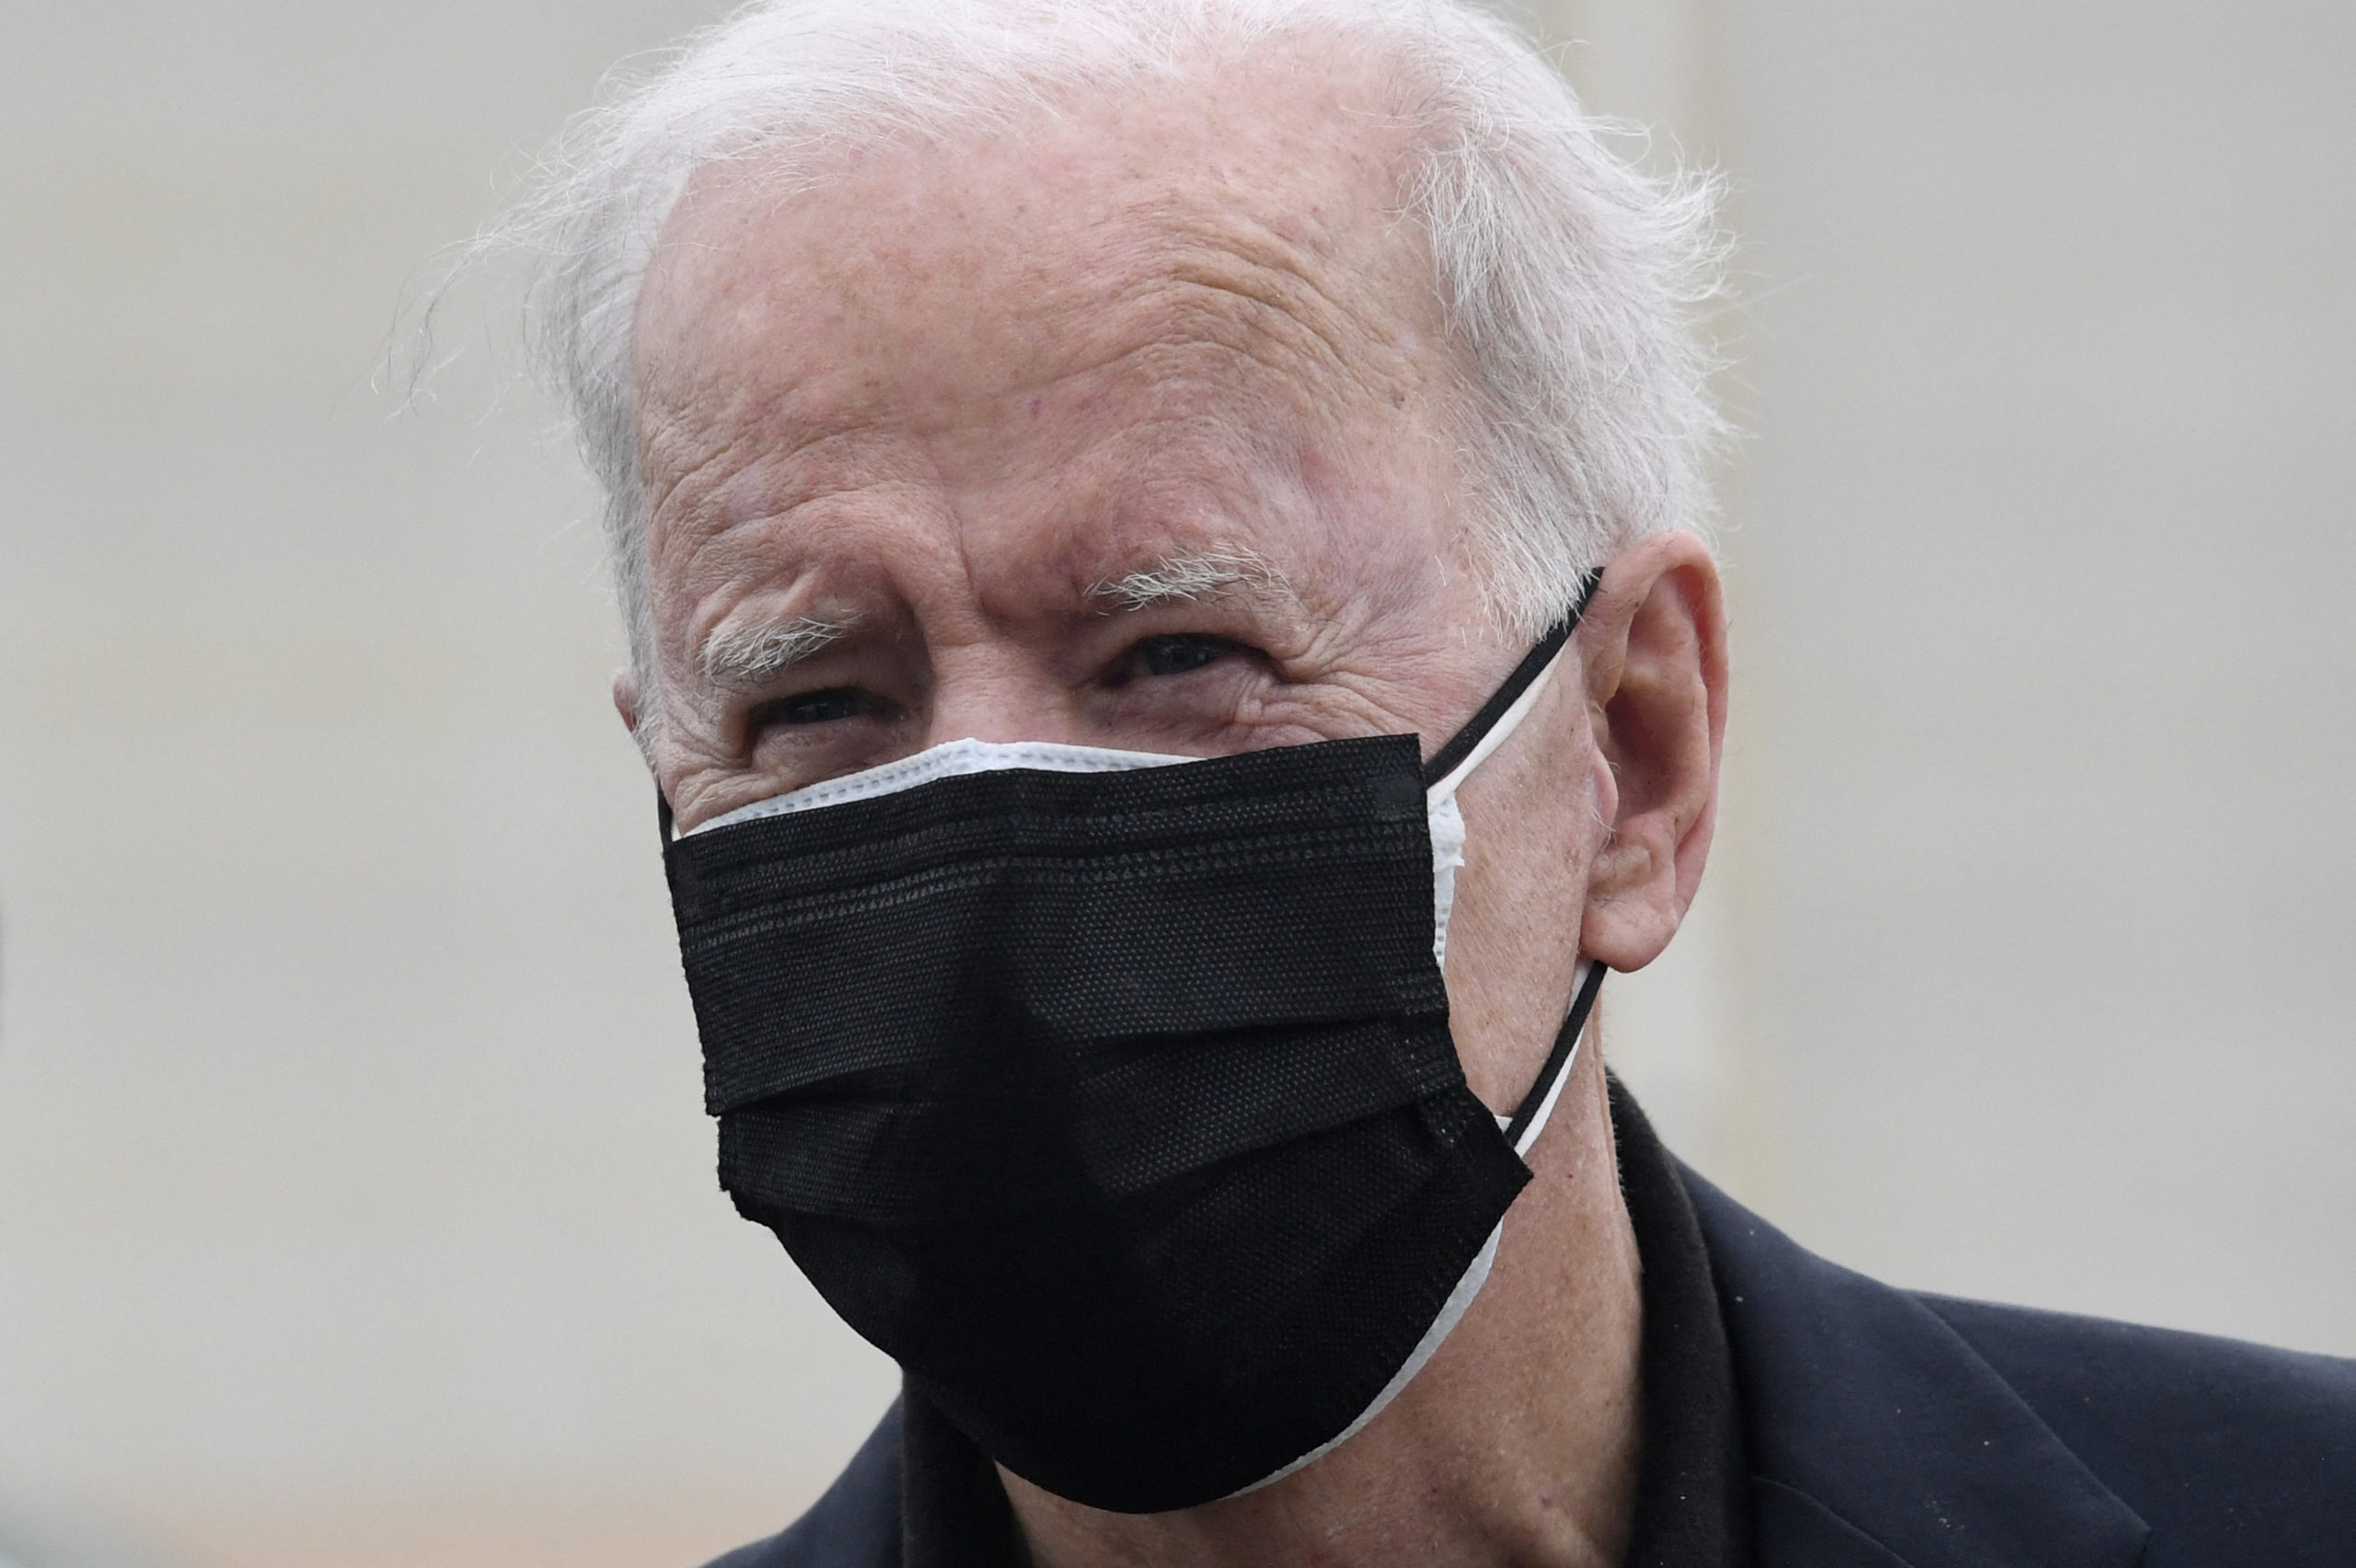 US President Joe Biden speaks to the press before boarding Air Force One after spending the weekend in Wilmington, at New Castle airport in New Castle, Delaware on March 28, 2021. (Photo by OLIVIER DOULIERY/AFP via Getty Images)